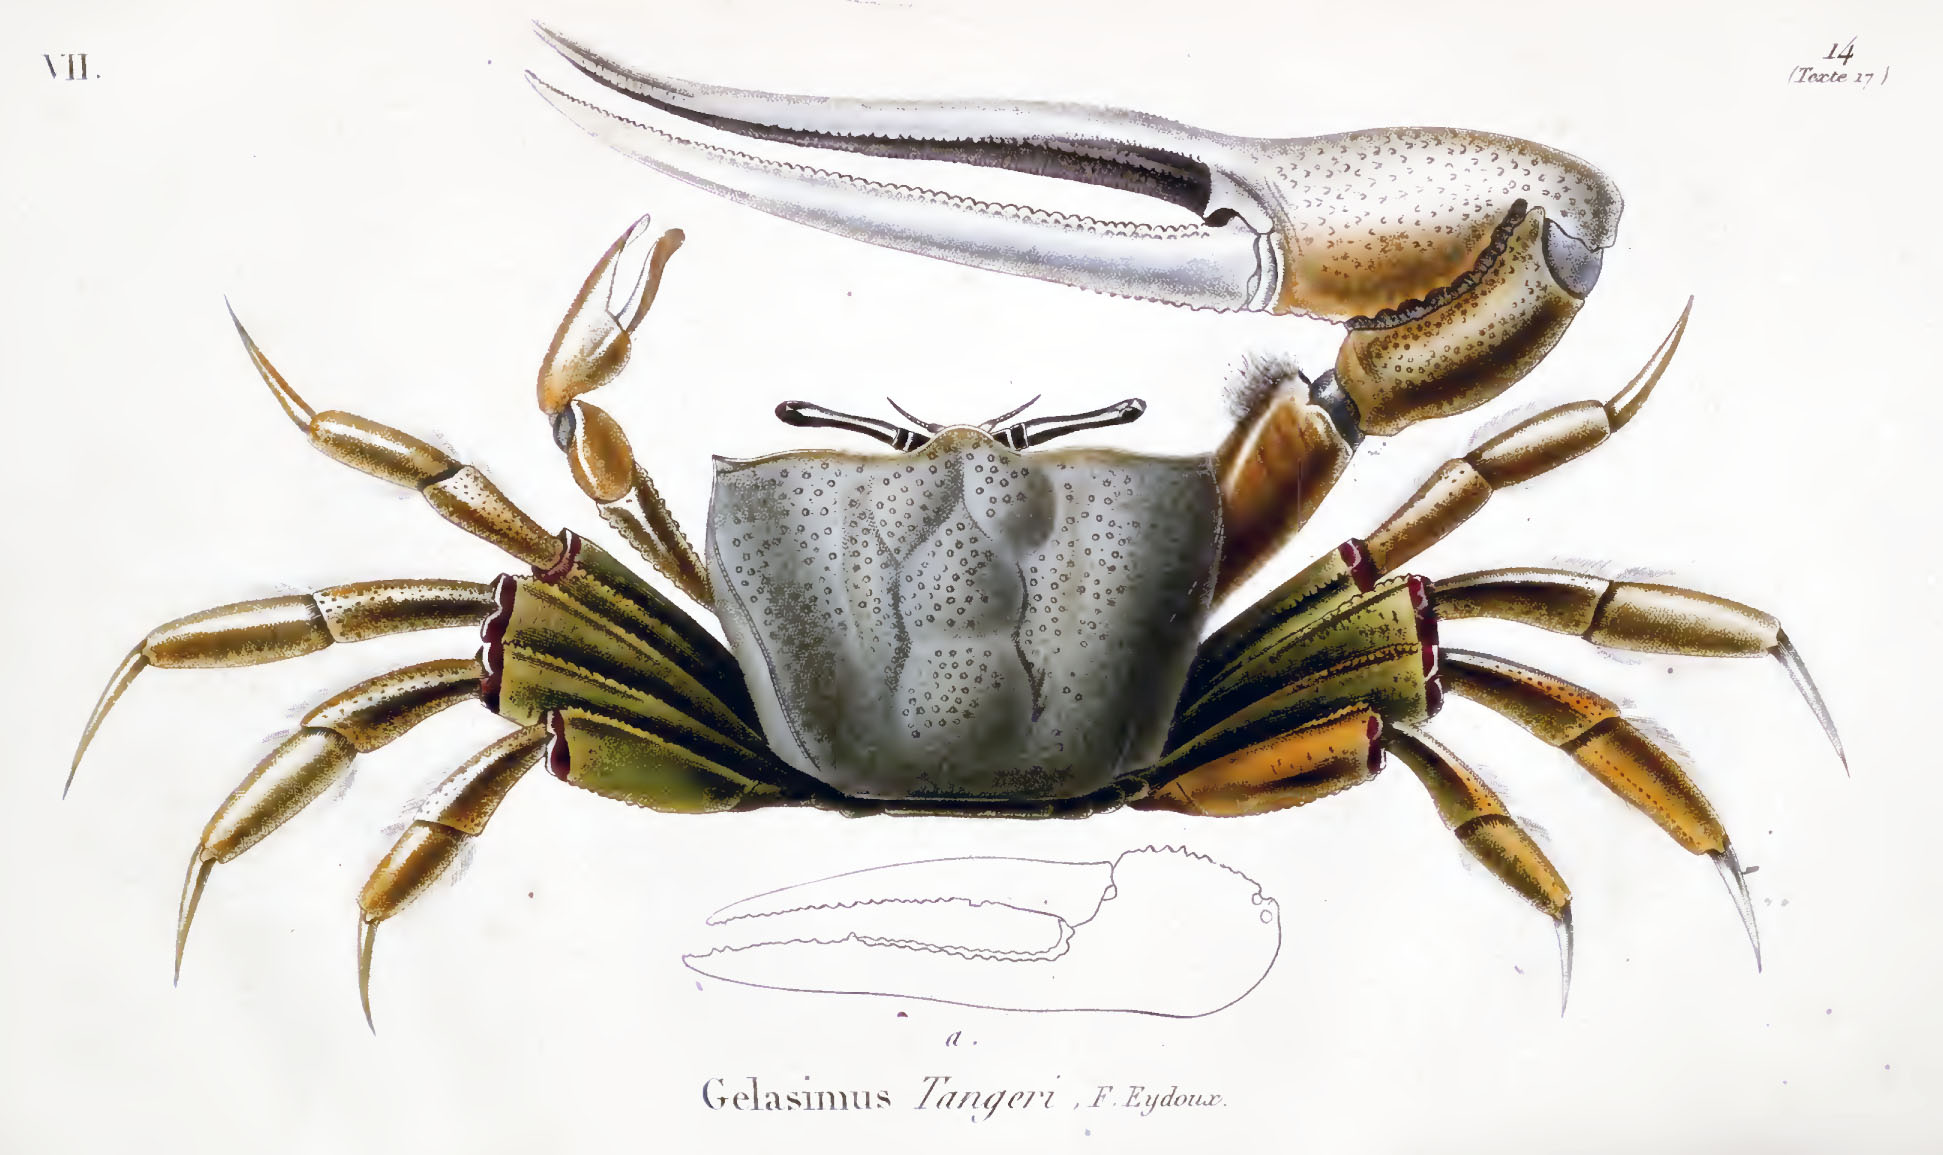 Fiddler Crab Drawing This Drawing is From Eydoux